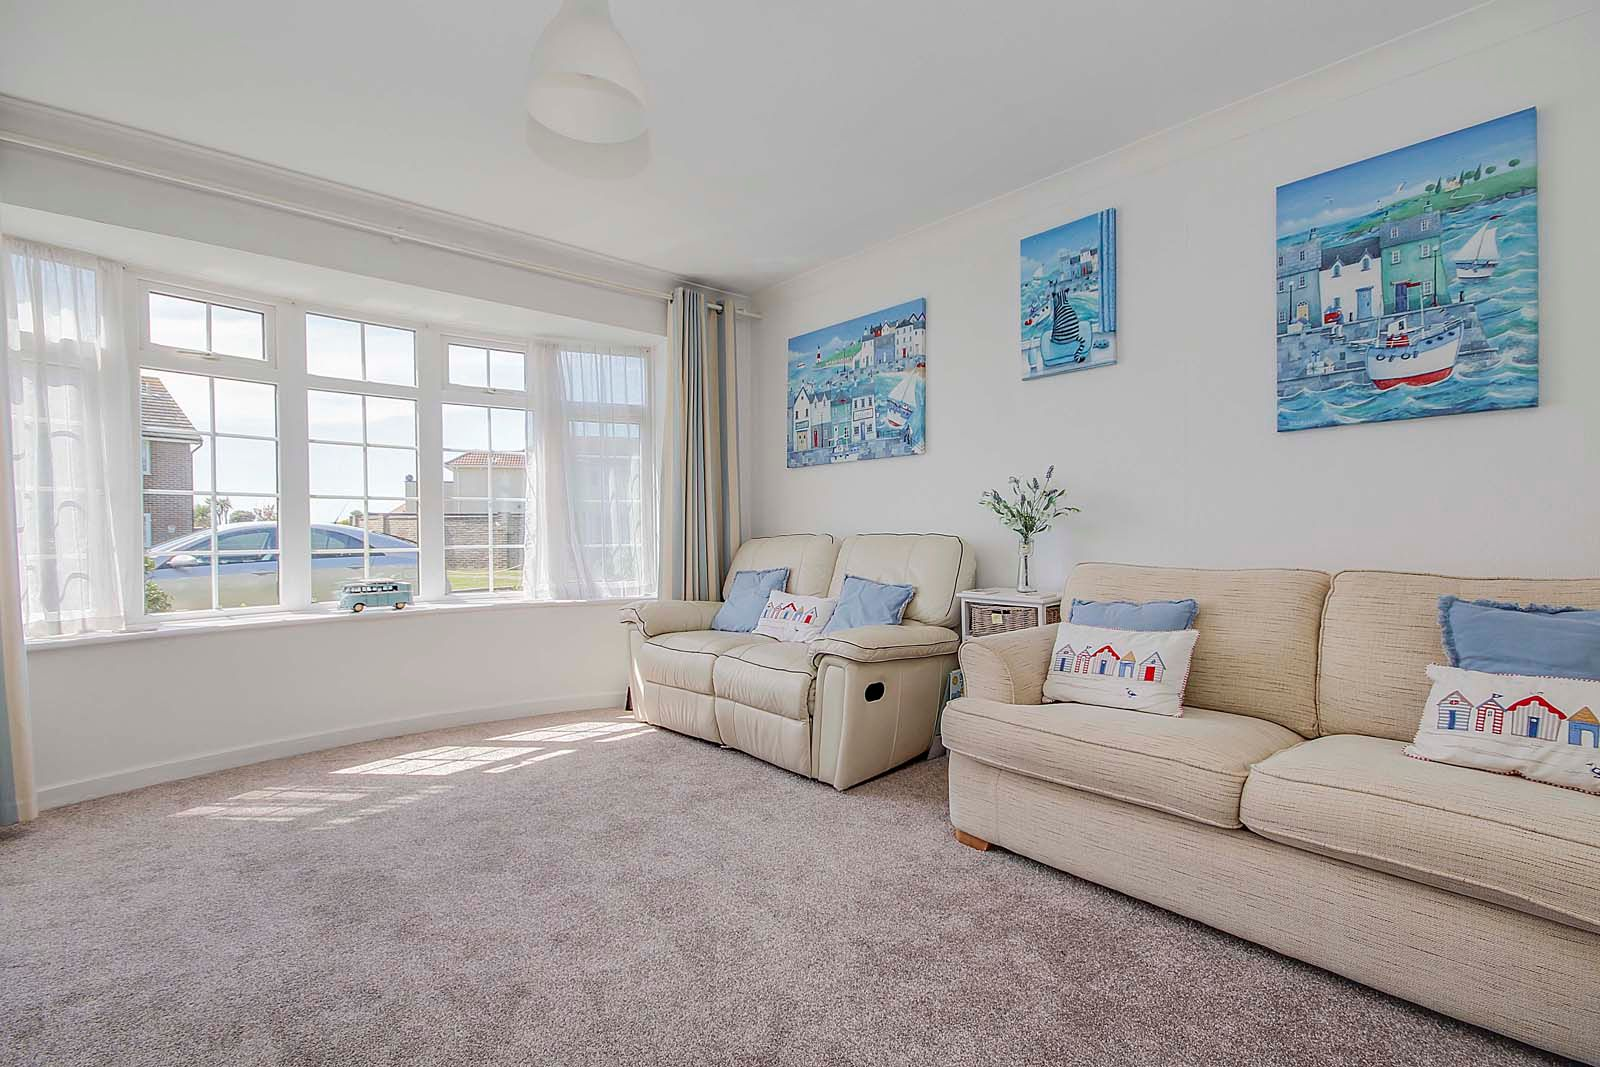 2 bed  for sale in Ferring Marine  - Property Image 4